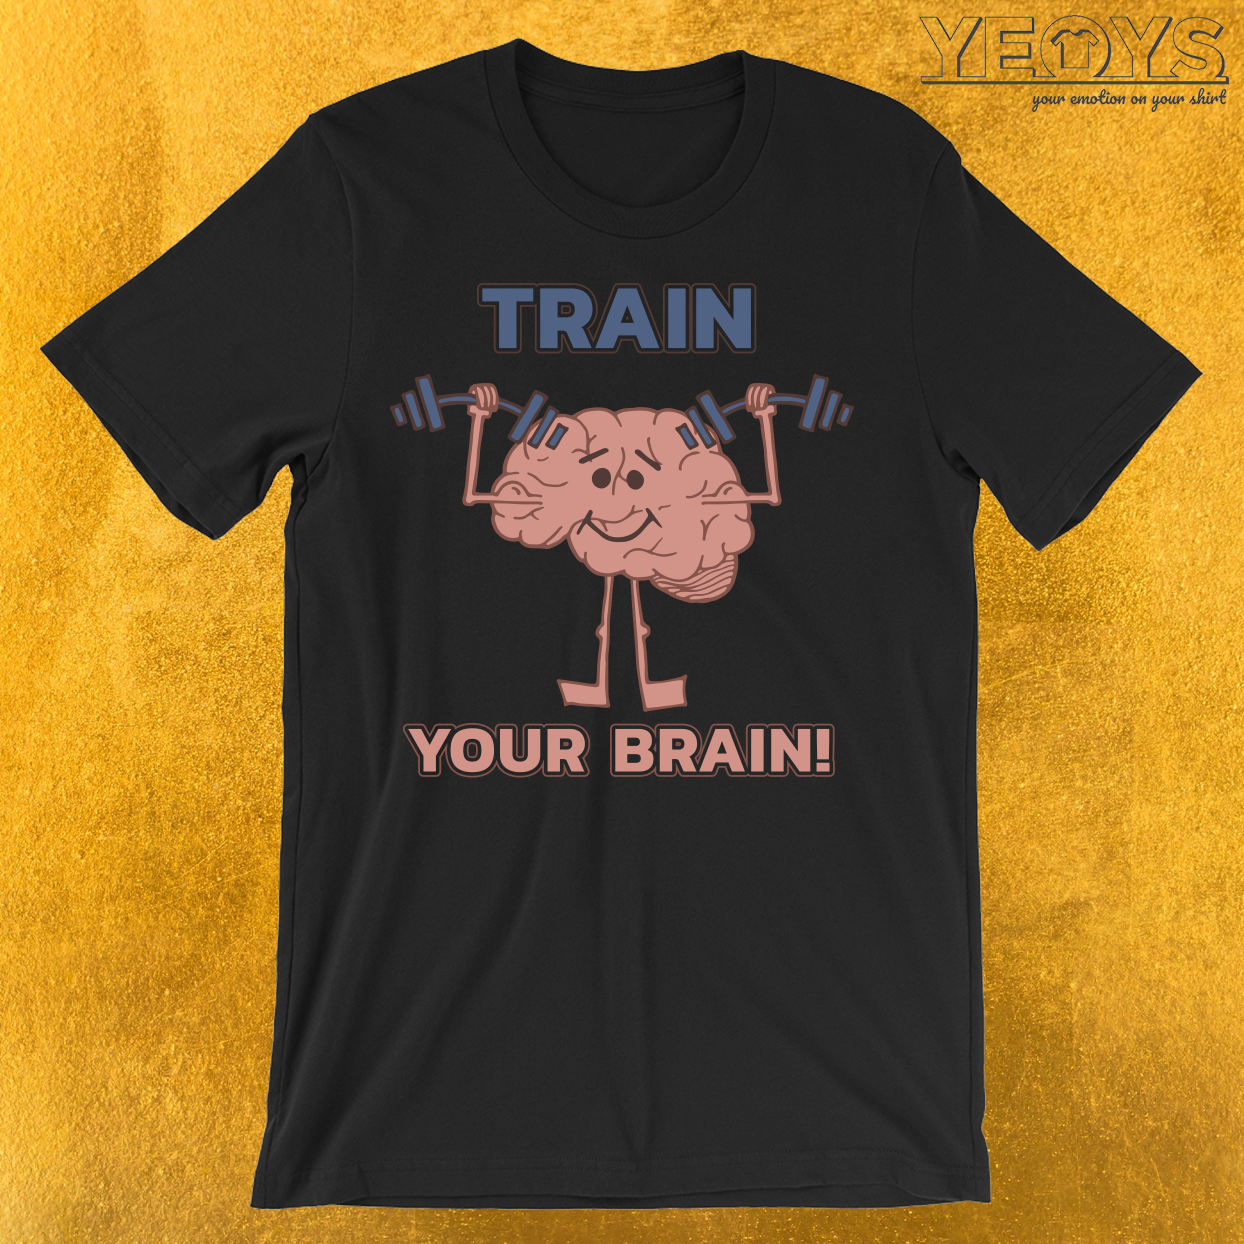 Train Your Brain T-Shirt